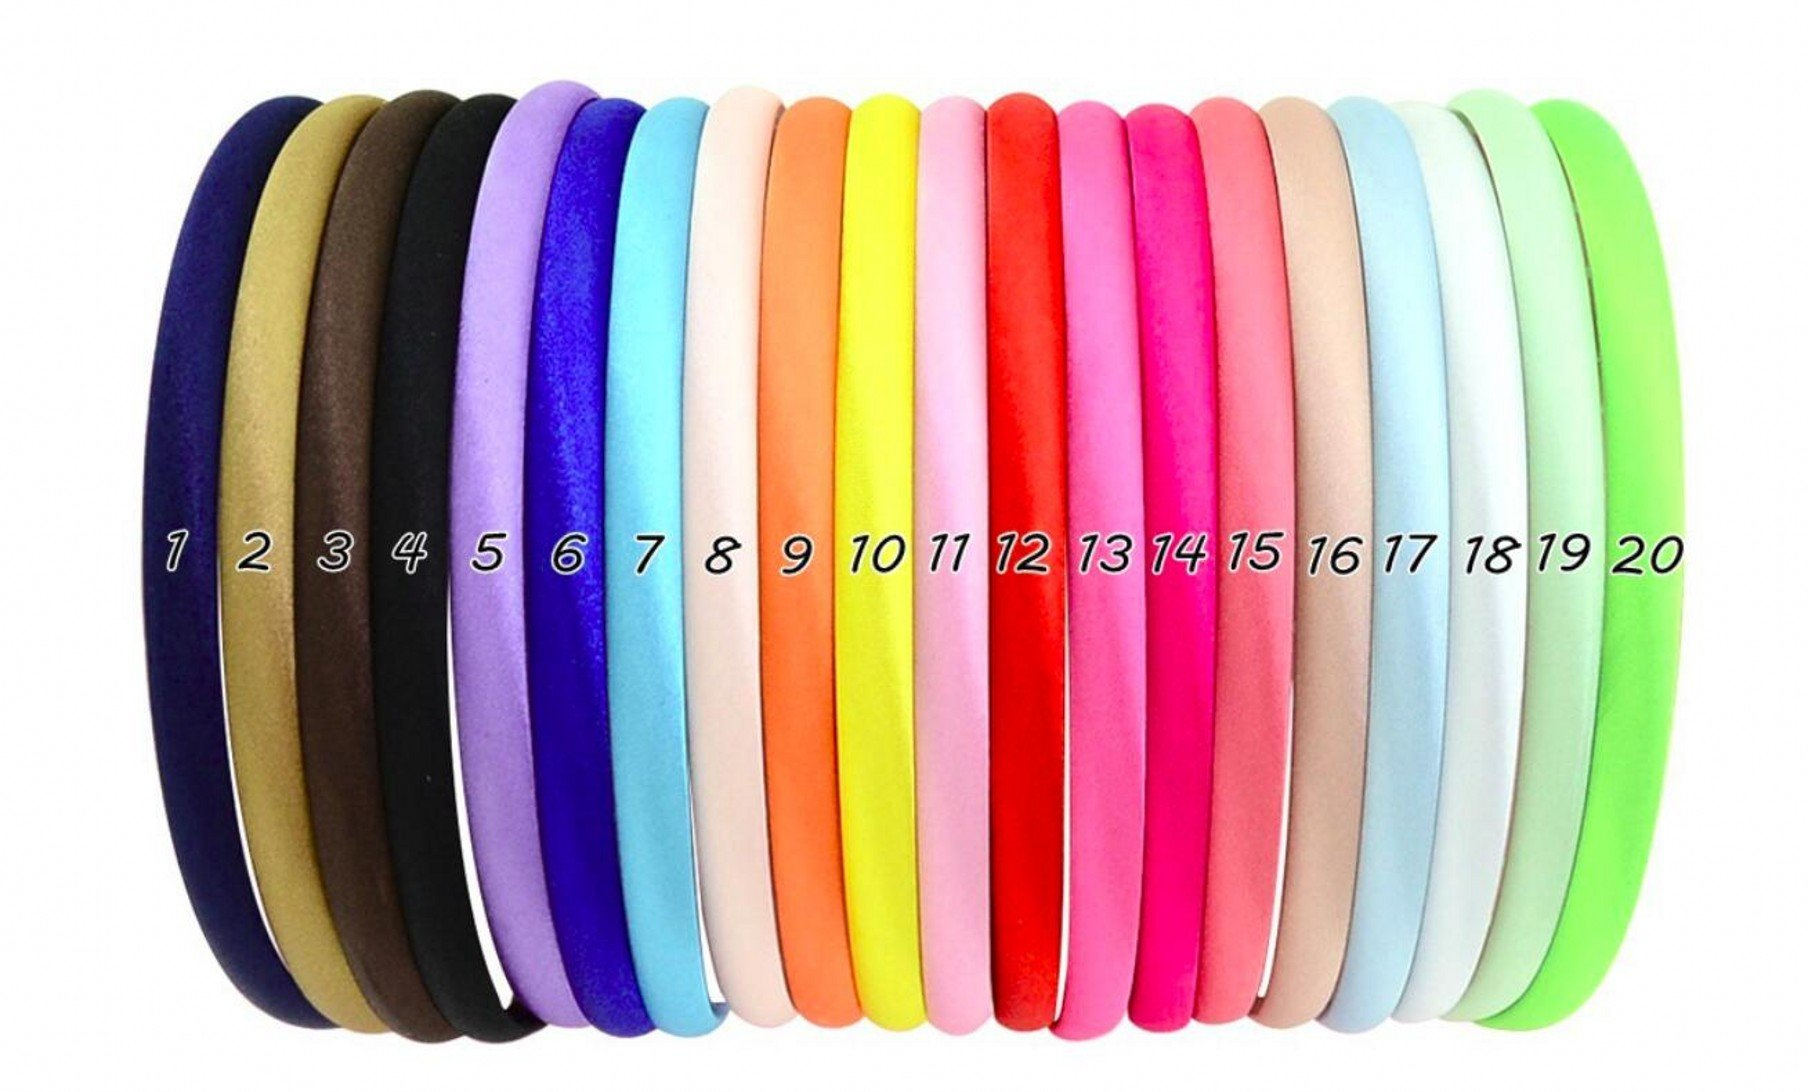 Calliar Girl Colorful Cute Kids Hairbands Plastic DIY Hair Bands 1cm Width 36cm Circle Size,20 Pack-Colorful